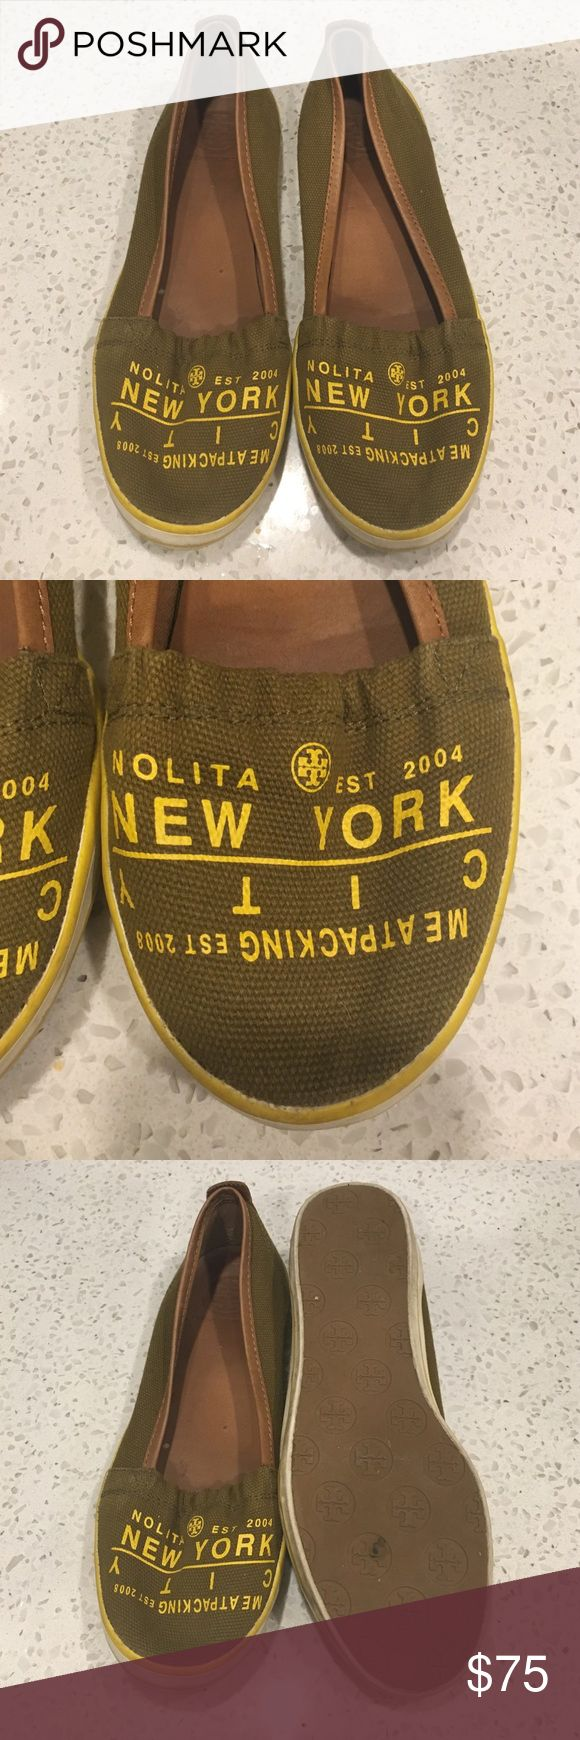 """🆕LISTING! Tory Burch """"Meat Packing"""" flats Just throwing on to see if there is any interest. No need to sell. Price is firm. Rarely worn (maybe 5 times). Super comfy and an easy go too Tory Burch Shoes Flats & Loafers"""